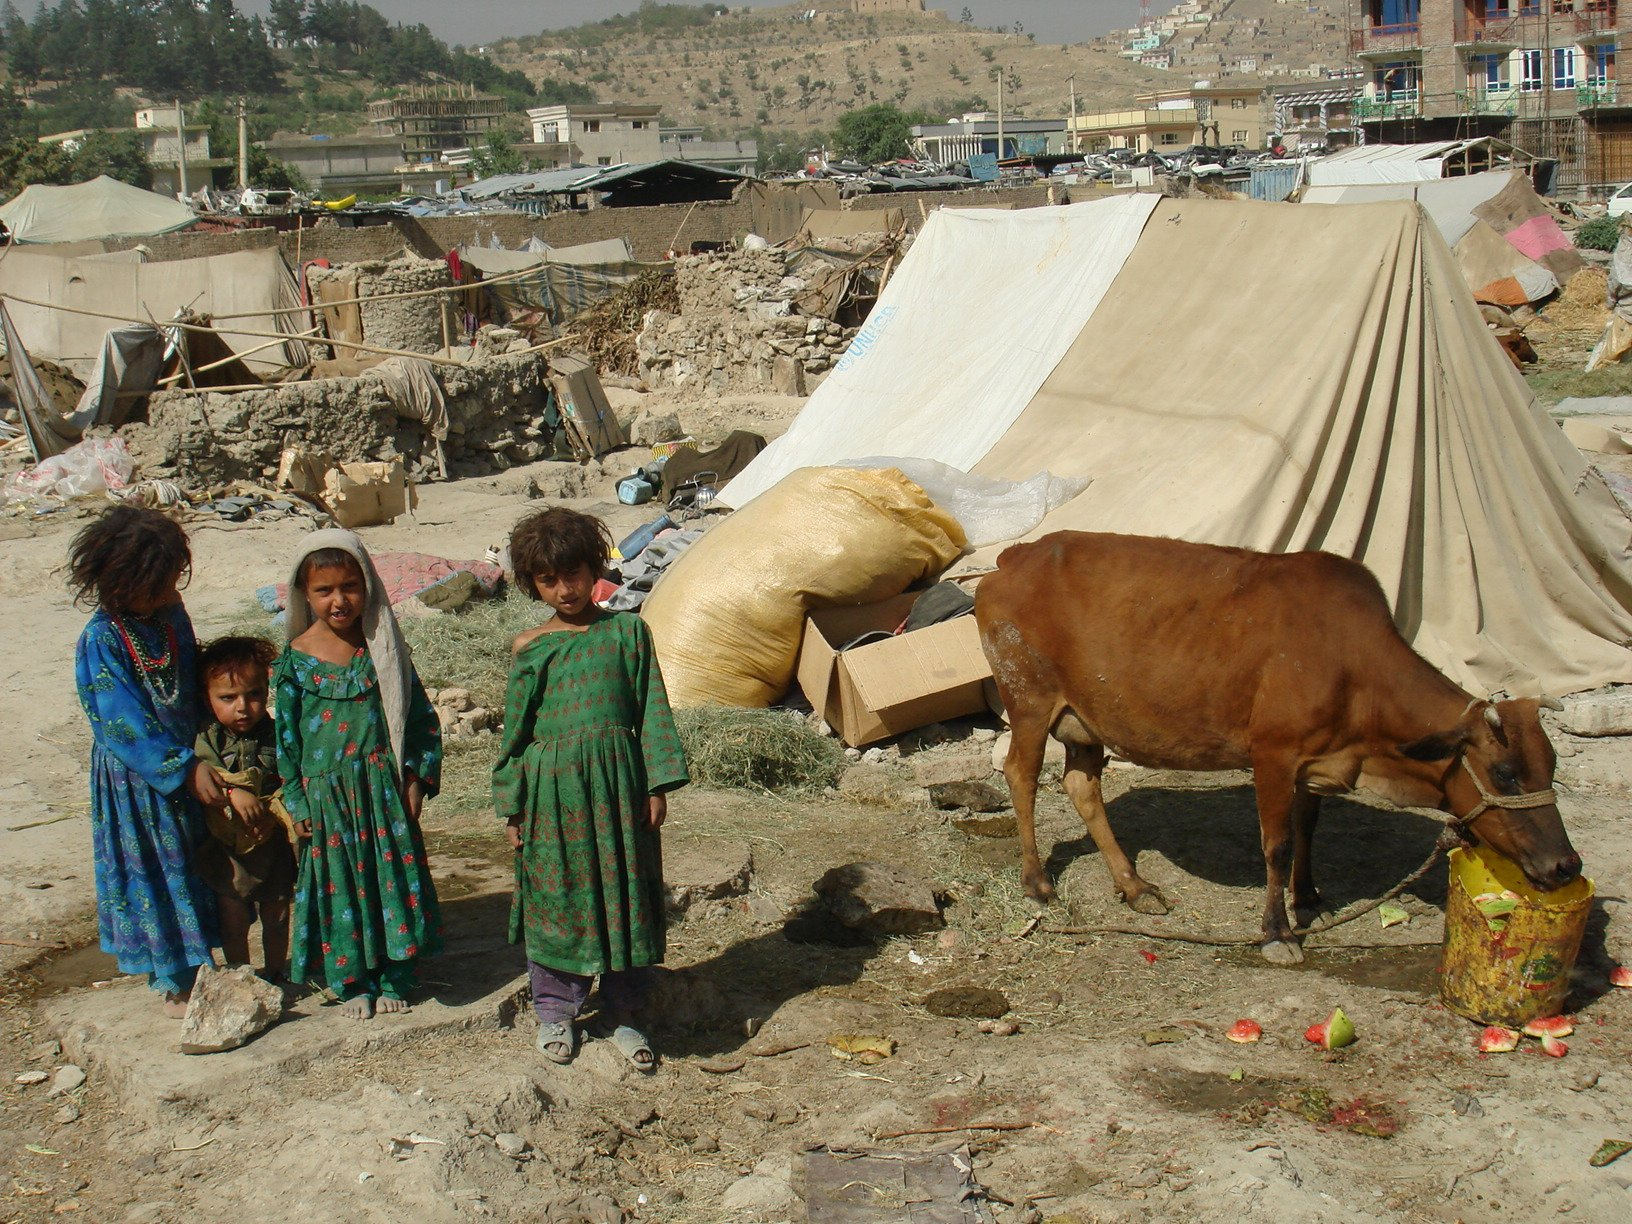 There are estimated 2-3 million Kuchis (nomads) in Afghanistan who traditionally herd animals on grazing land throughout the country.